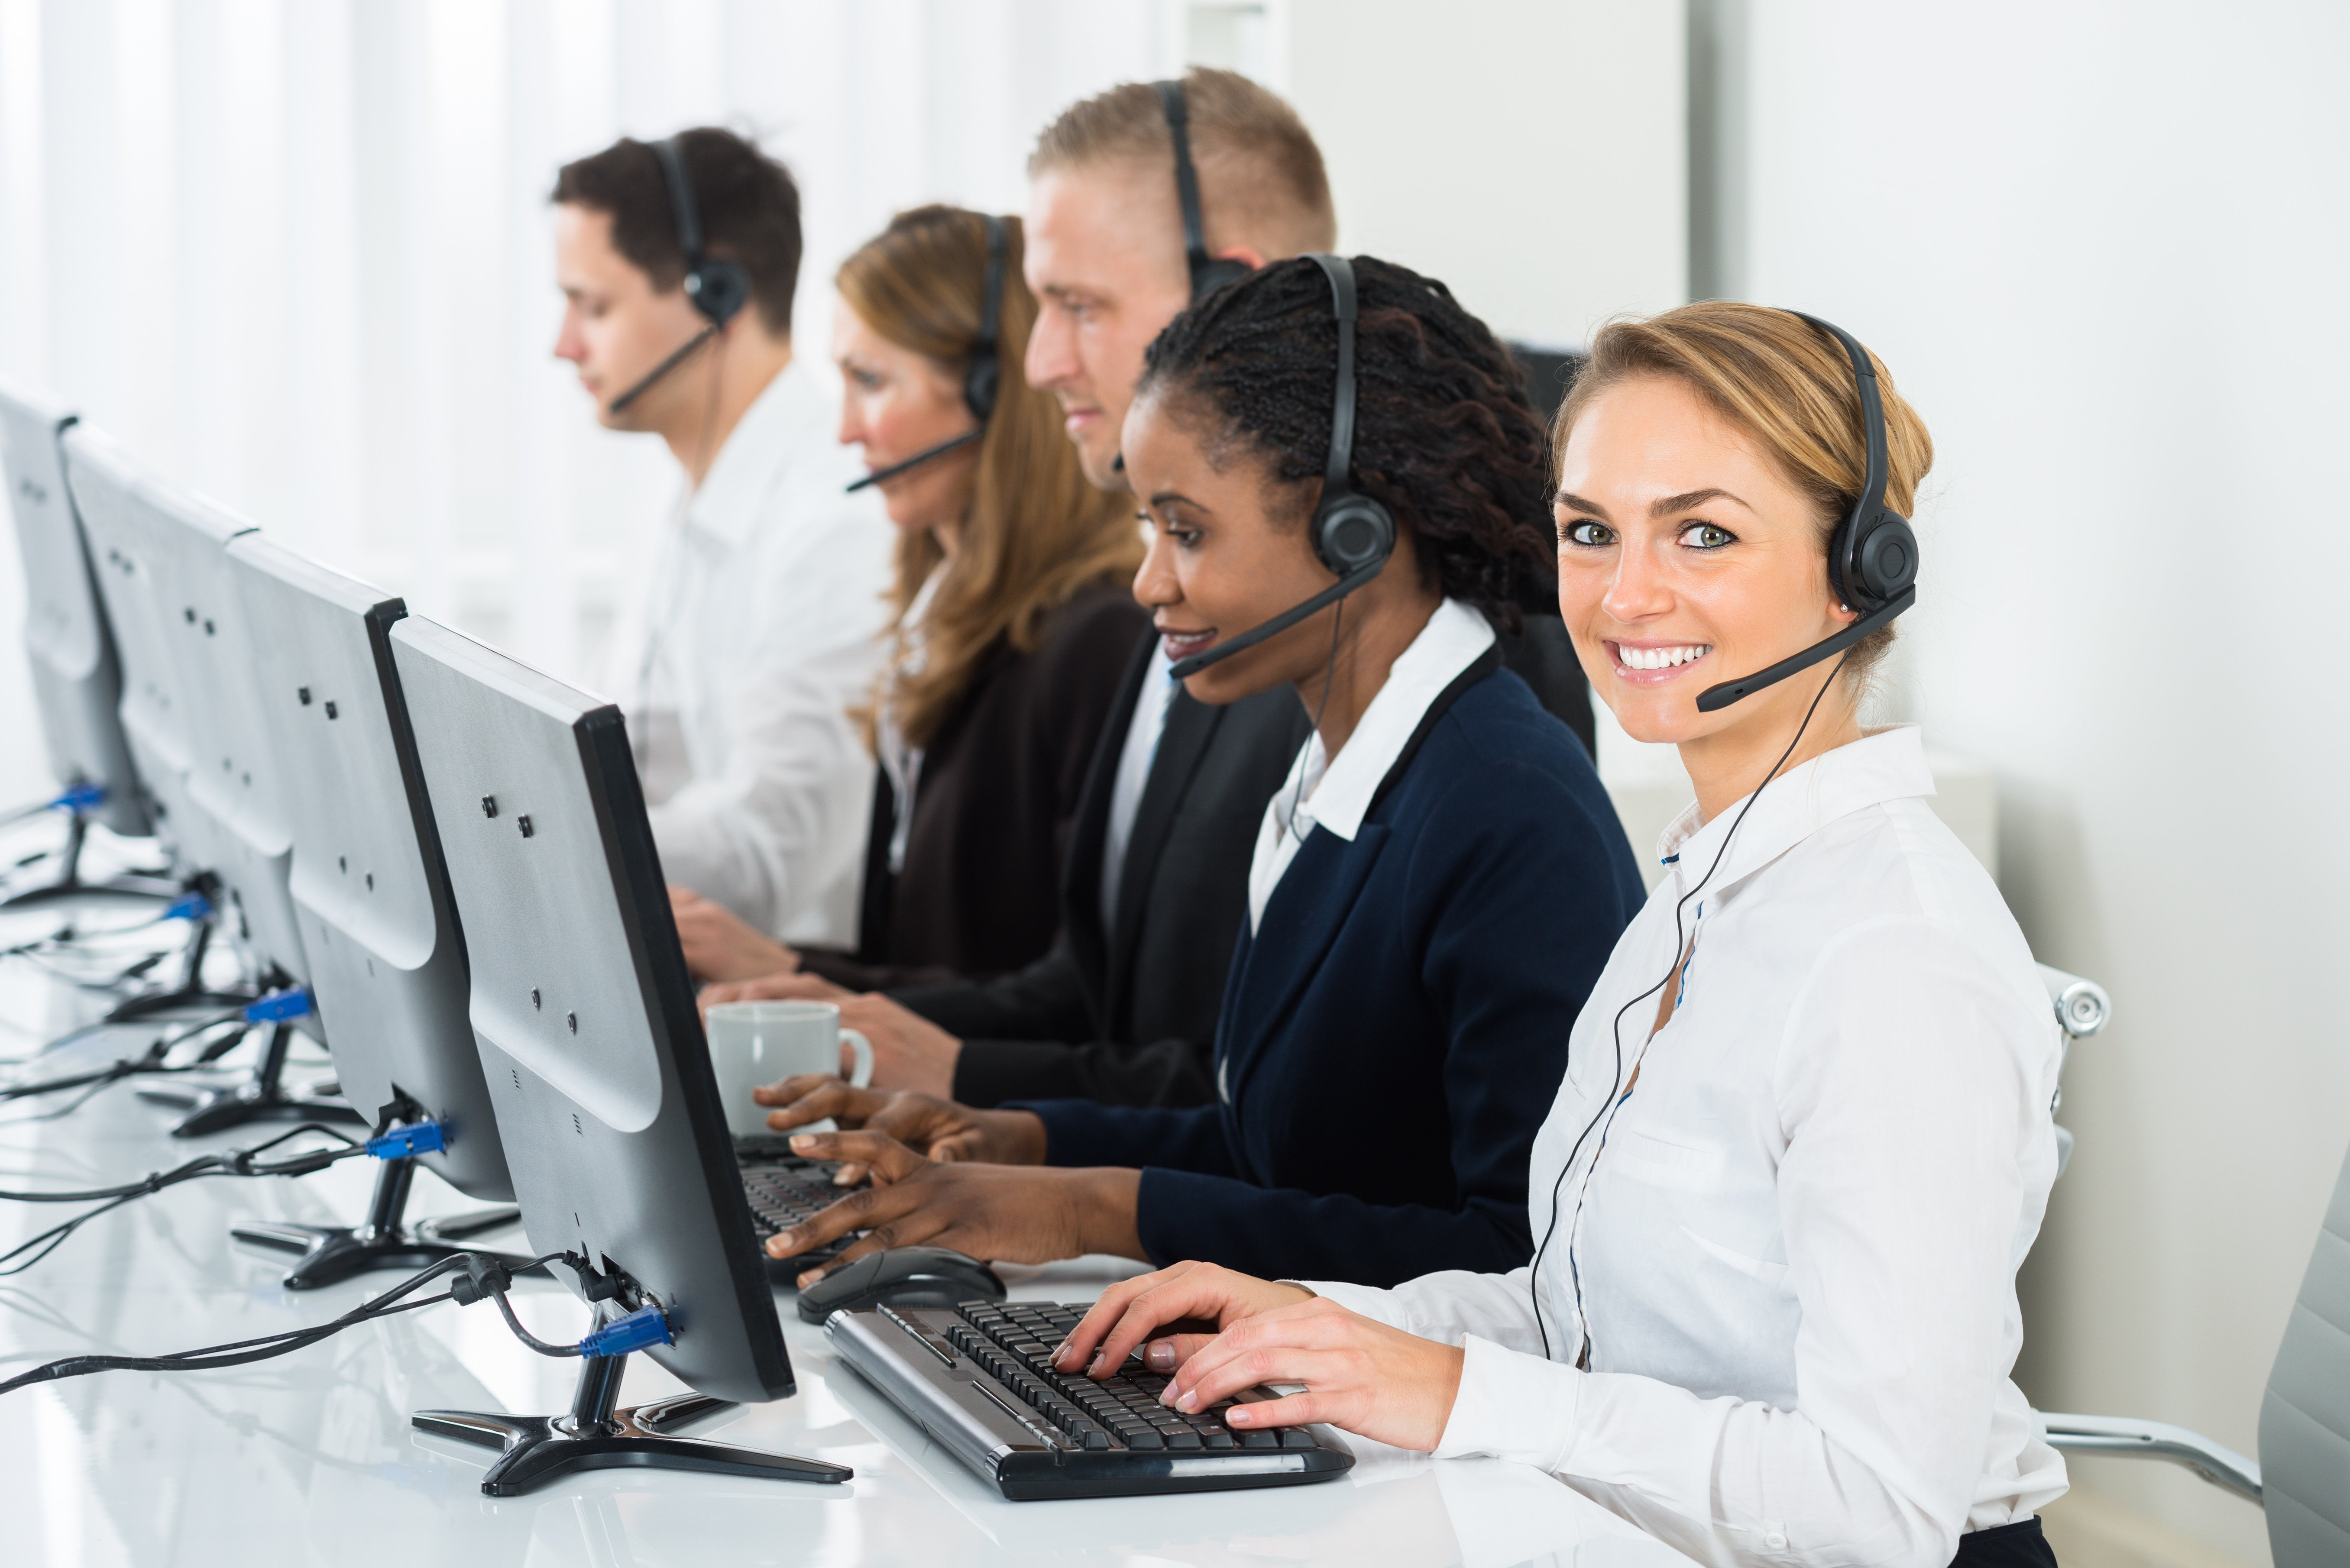 Agents providing outbound contact center service